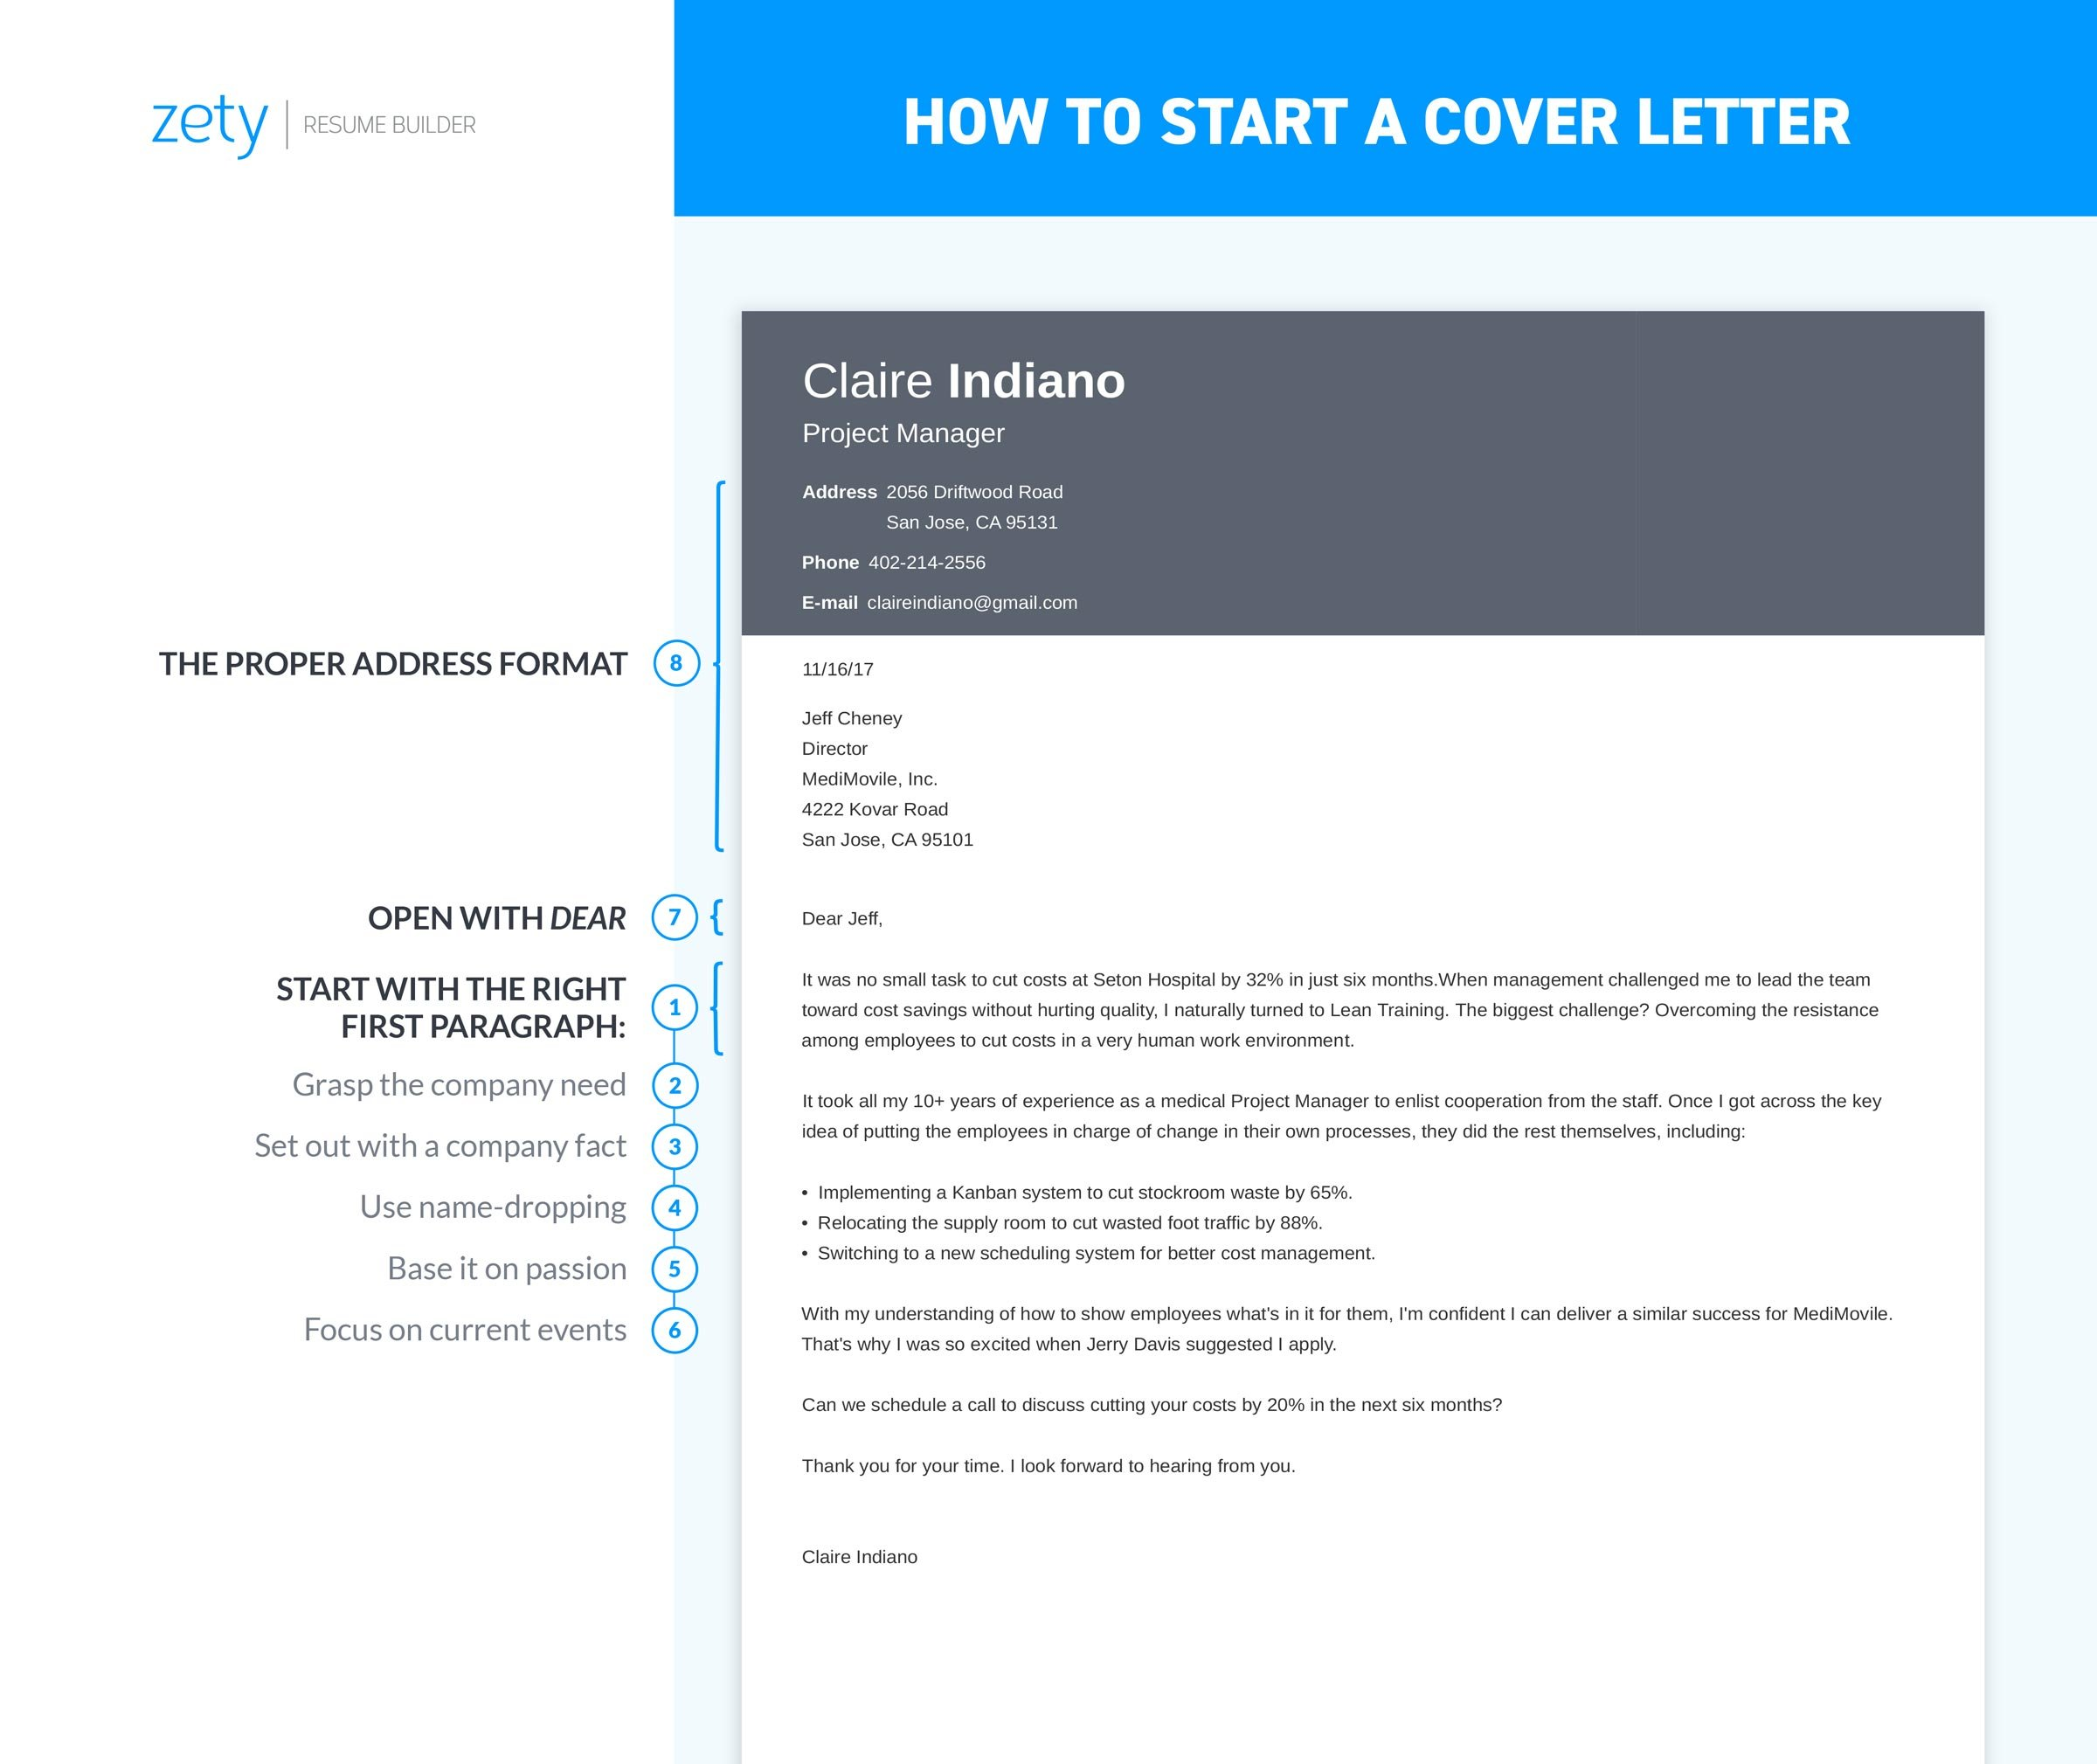 How to Start a Cover Letter [Introduction & 25+ Opening Lines]